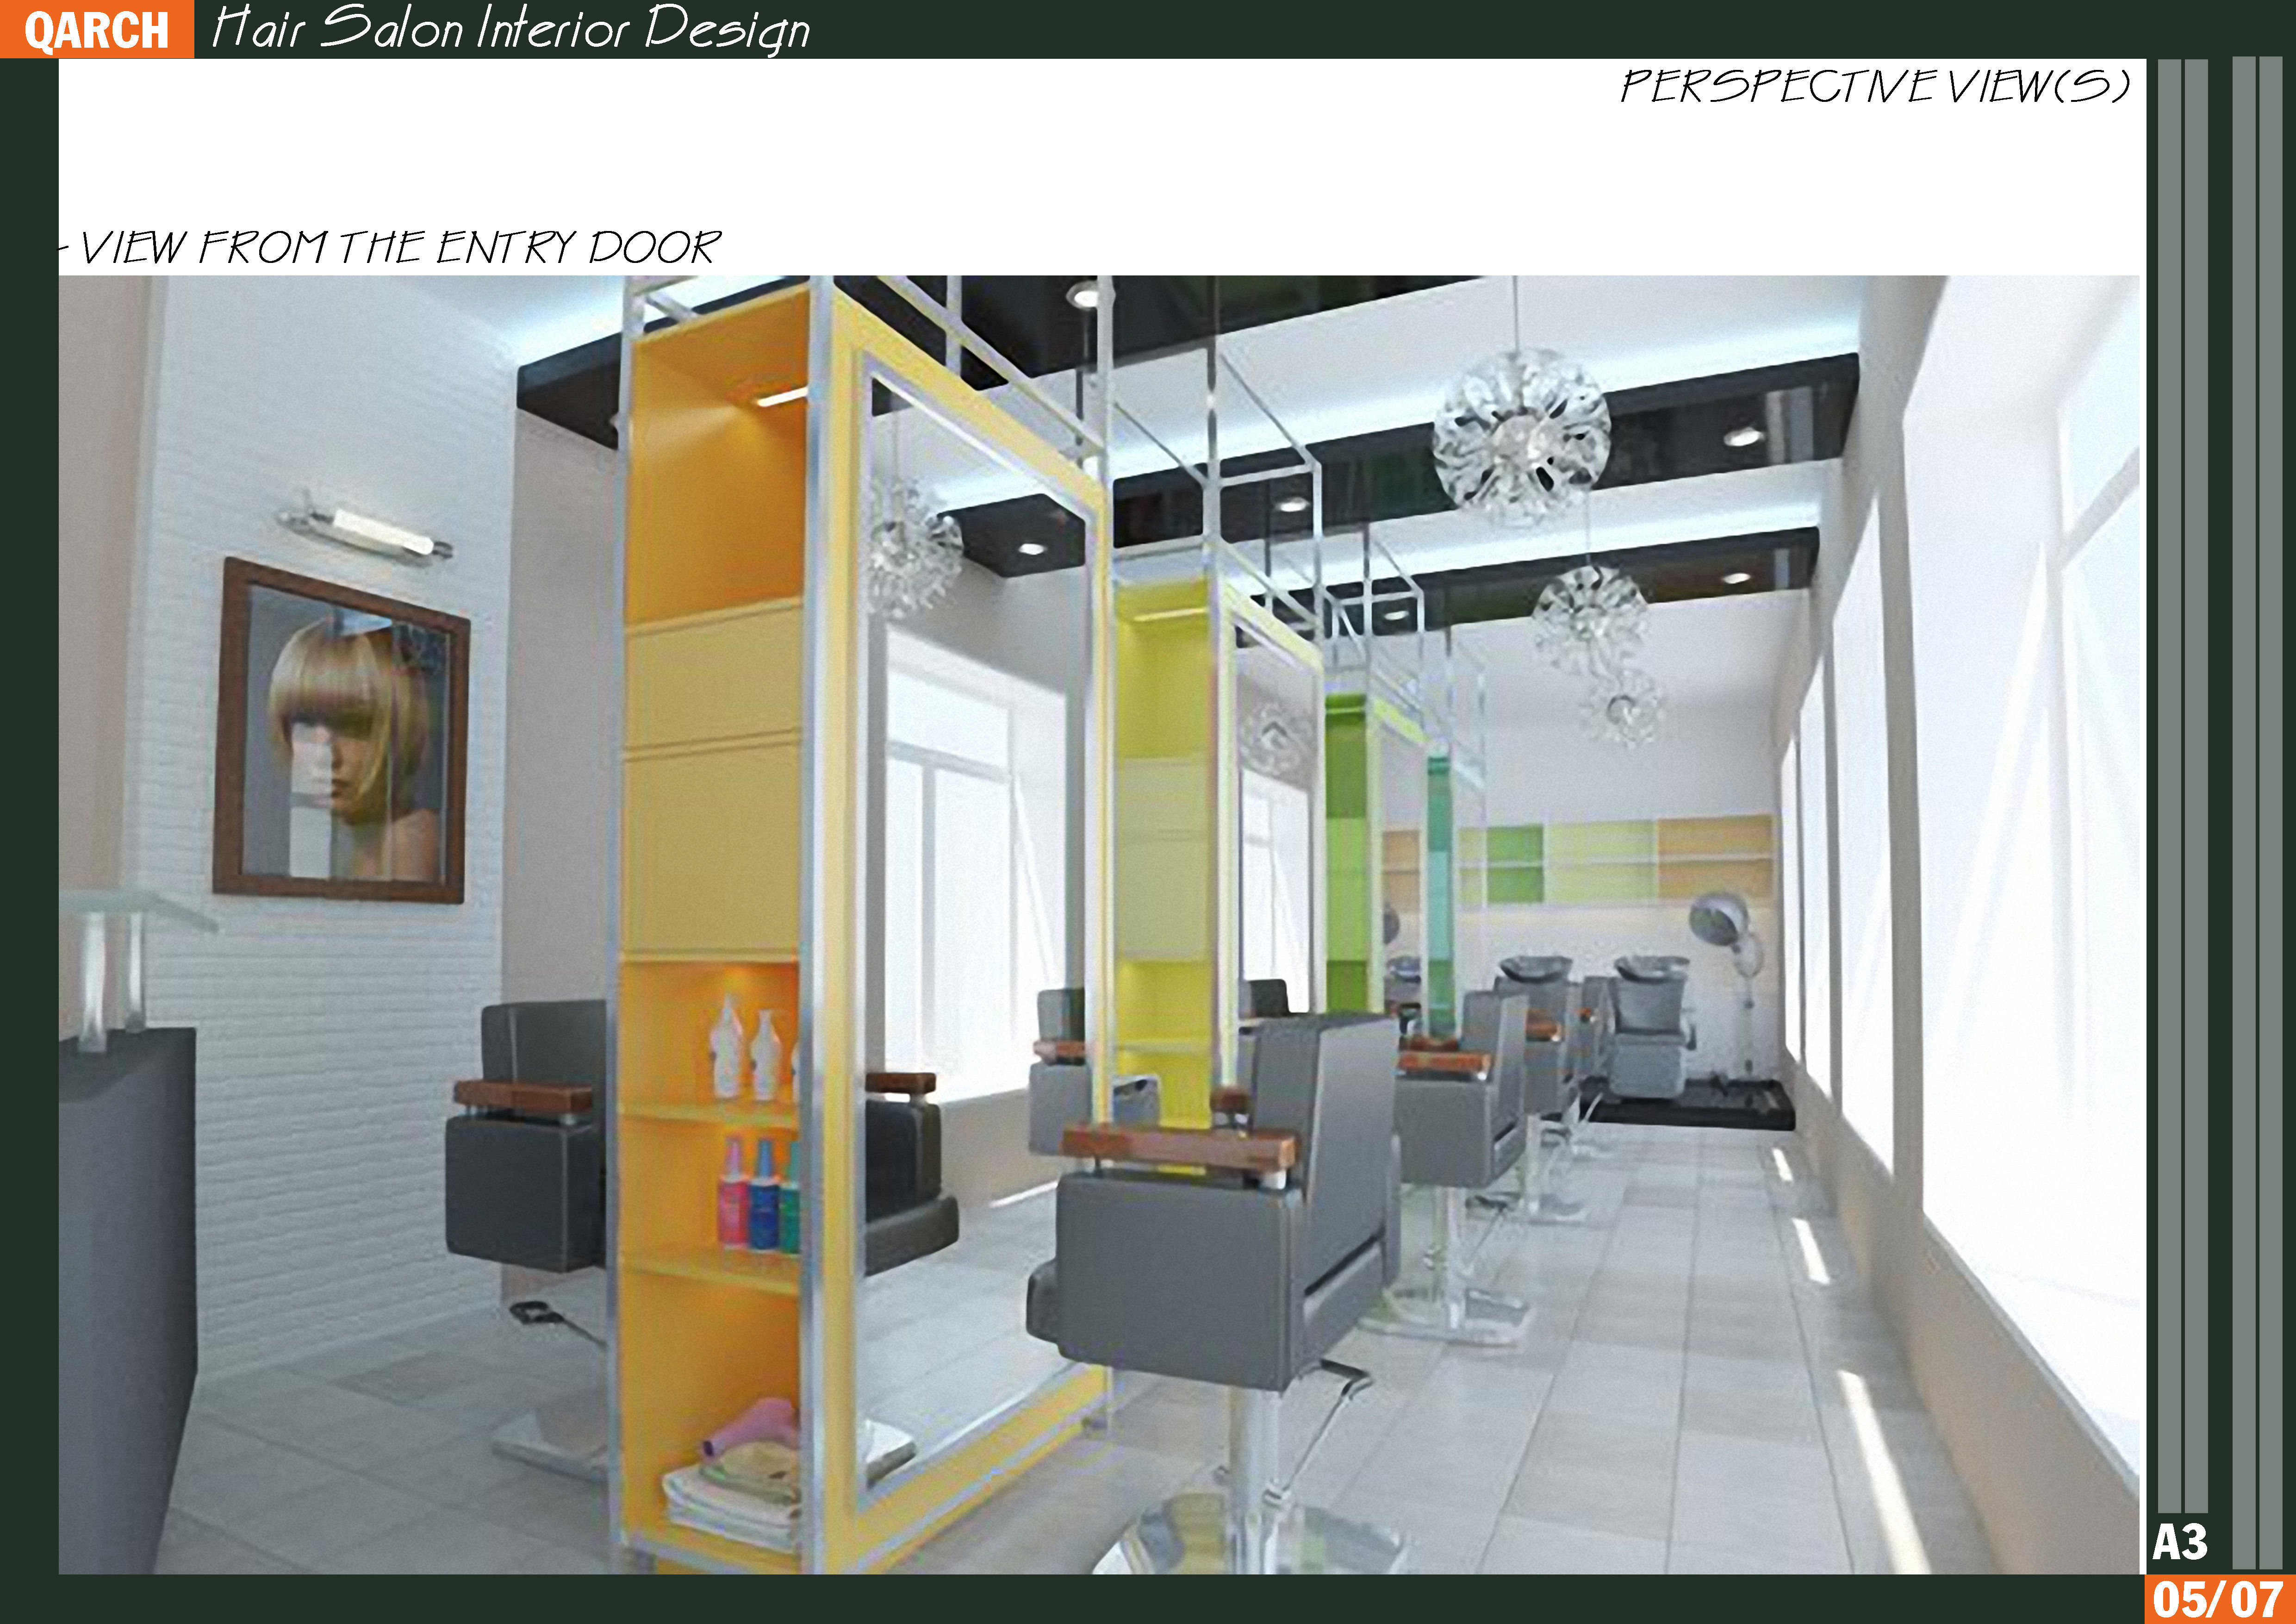 4 hair salon interior design 3d model max 3d interior design online